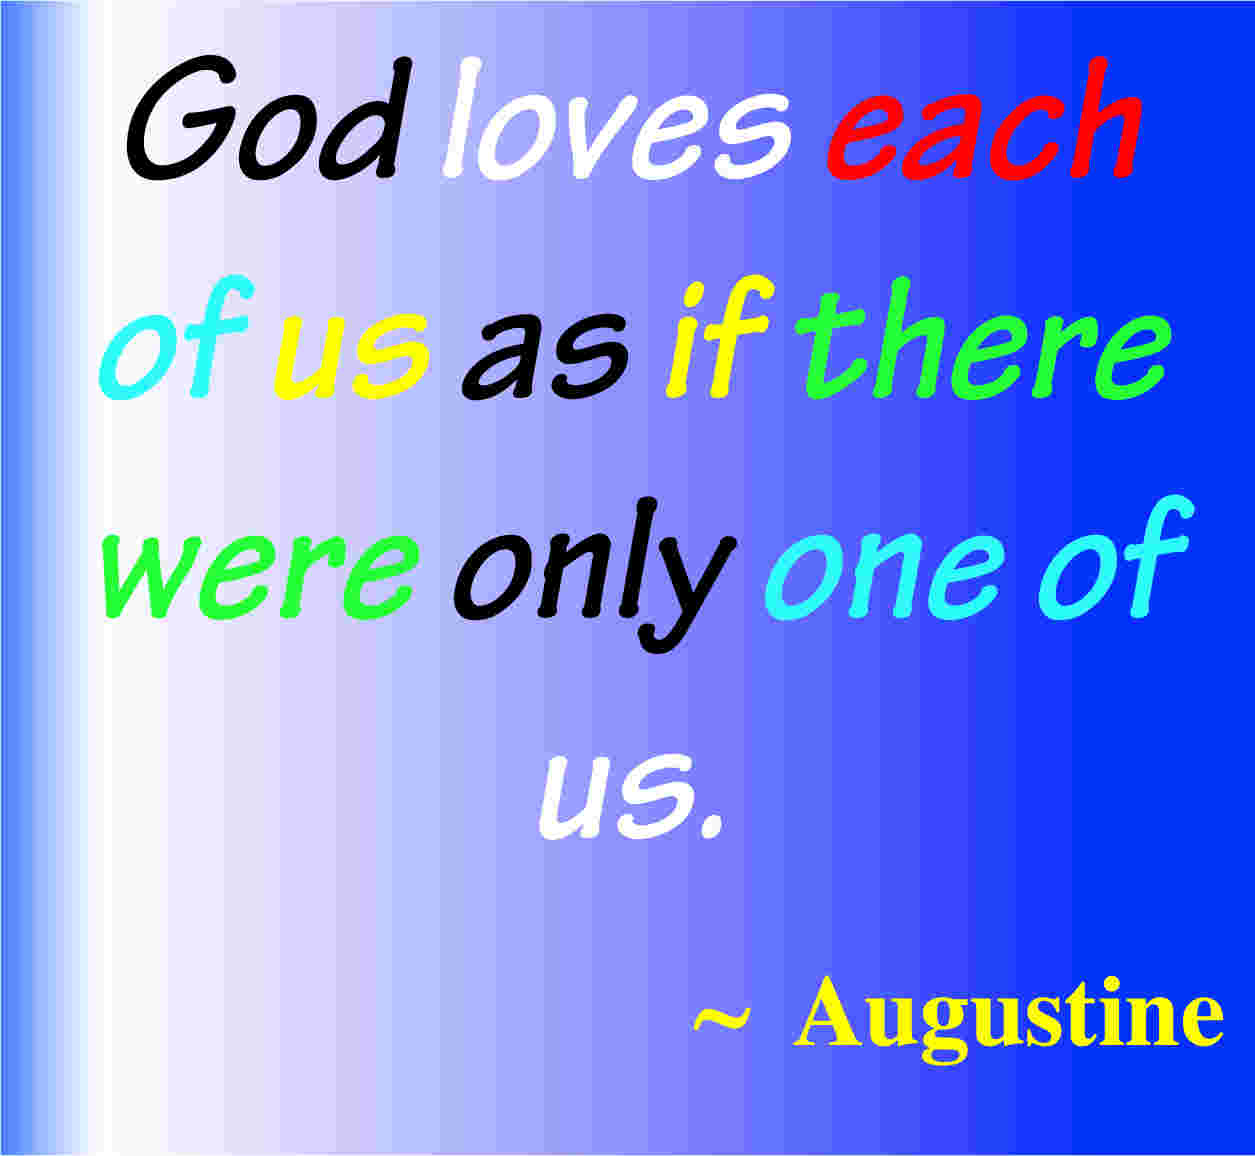 Love Quotes From The Bible Inspiration 20 Inspirational Bible Verses About God's Love